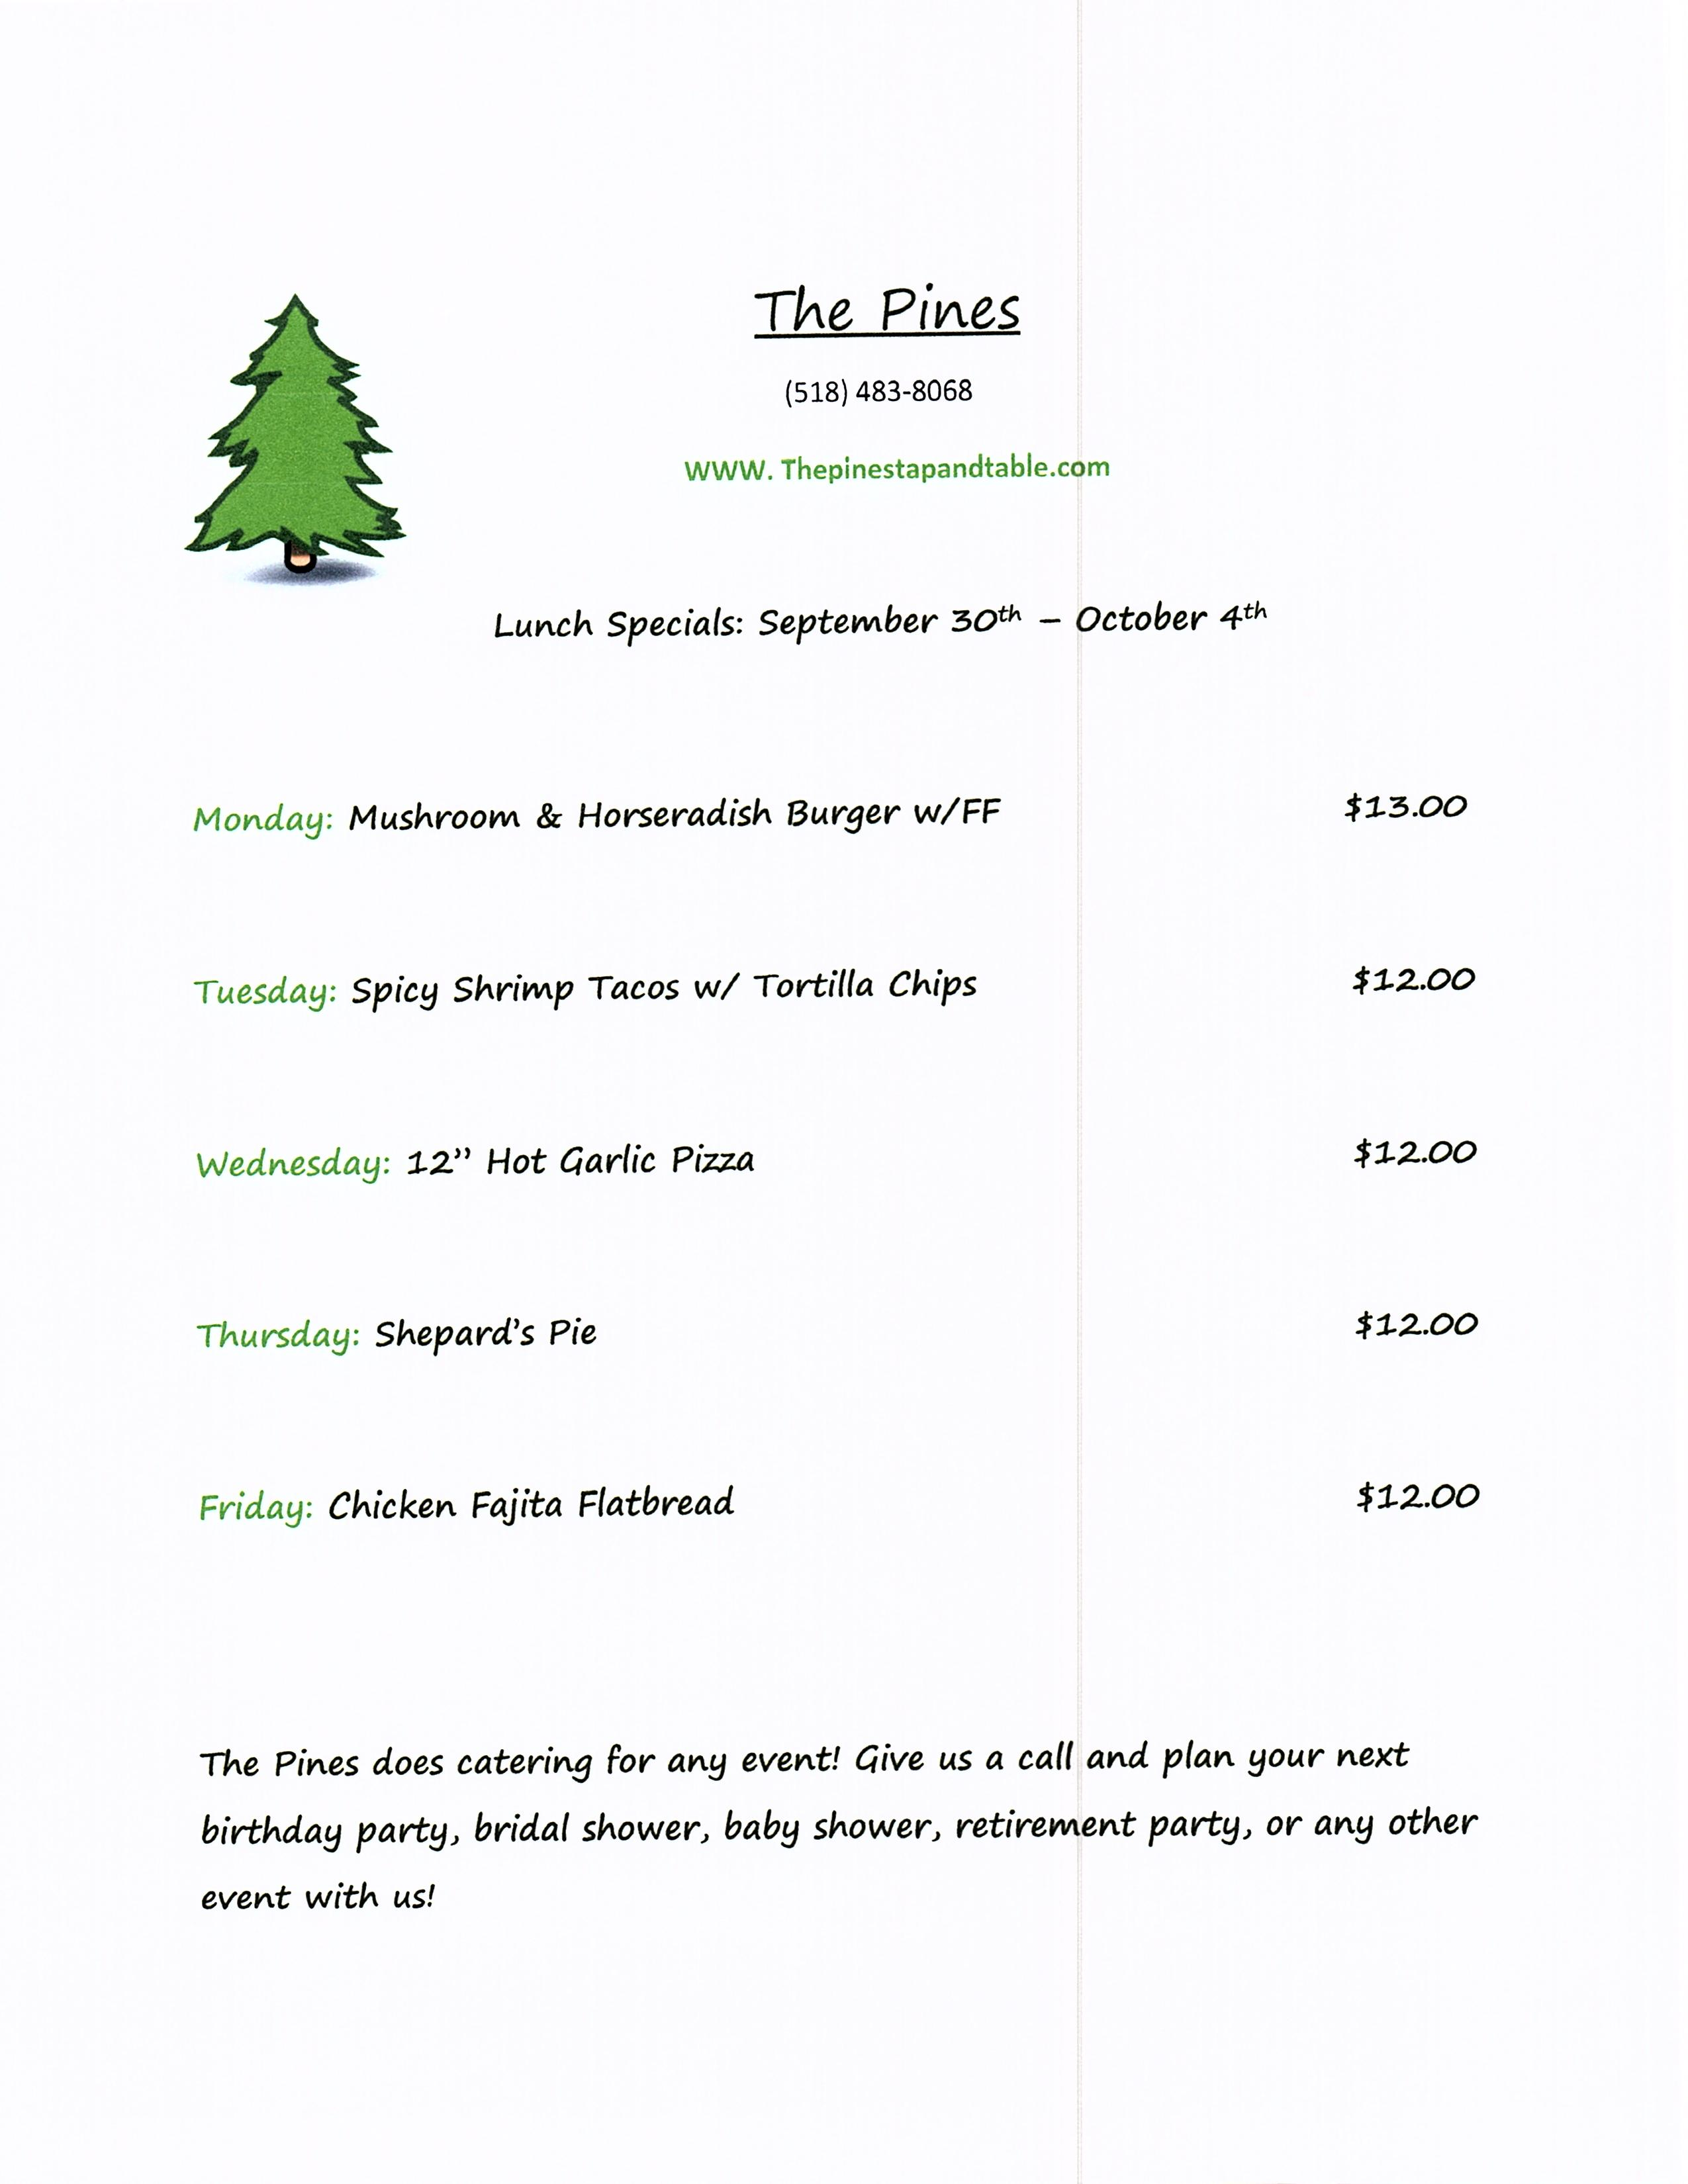 The Pines Tap and Table Lunch Specials Sept 30- Oct 4